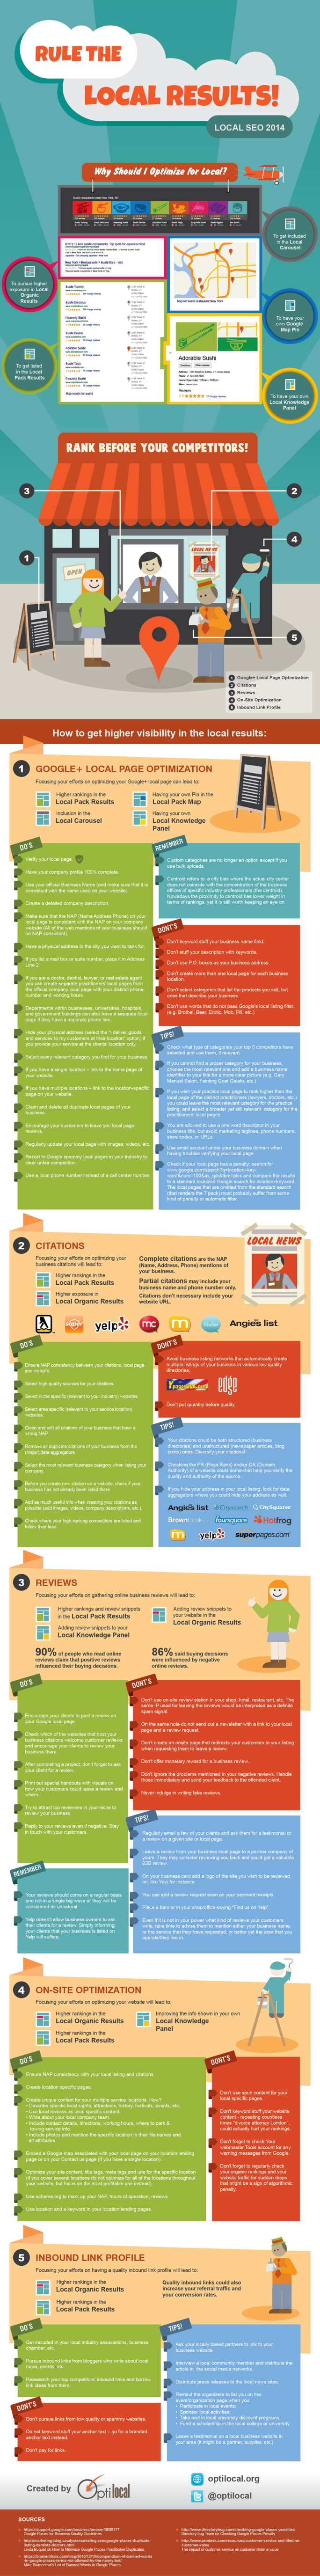 Optilocal_Infographic_Rule_the_Local_Results_v2(1)